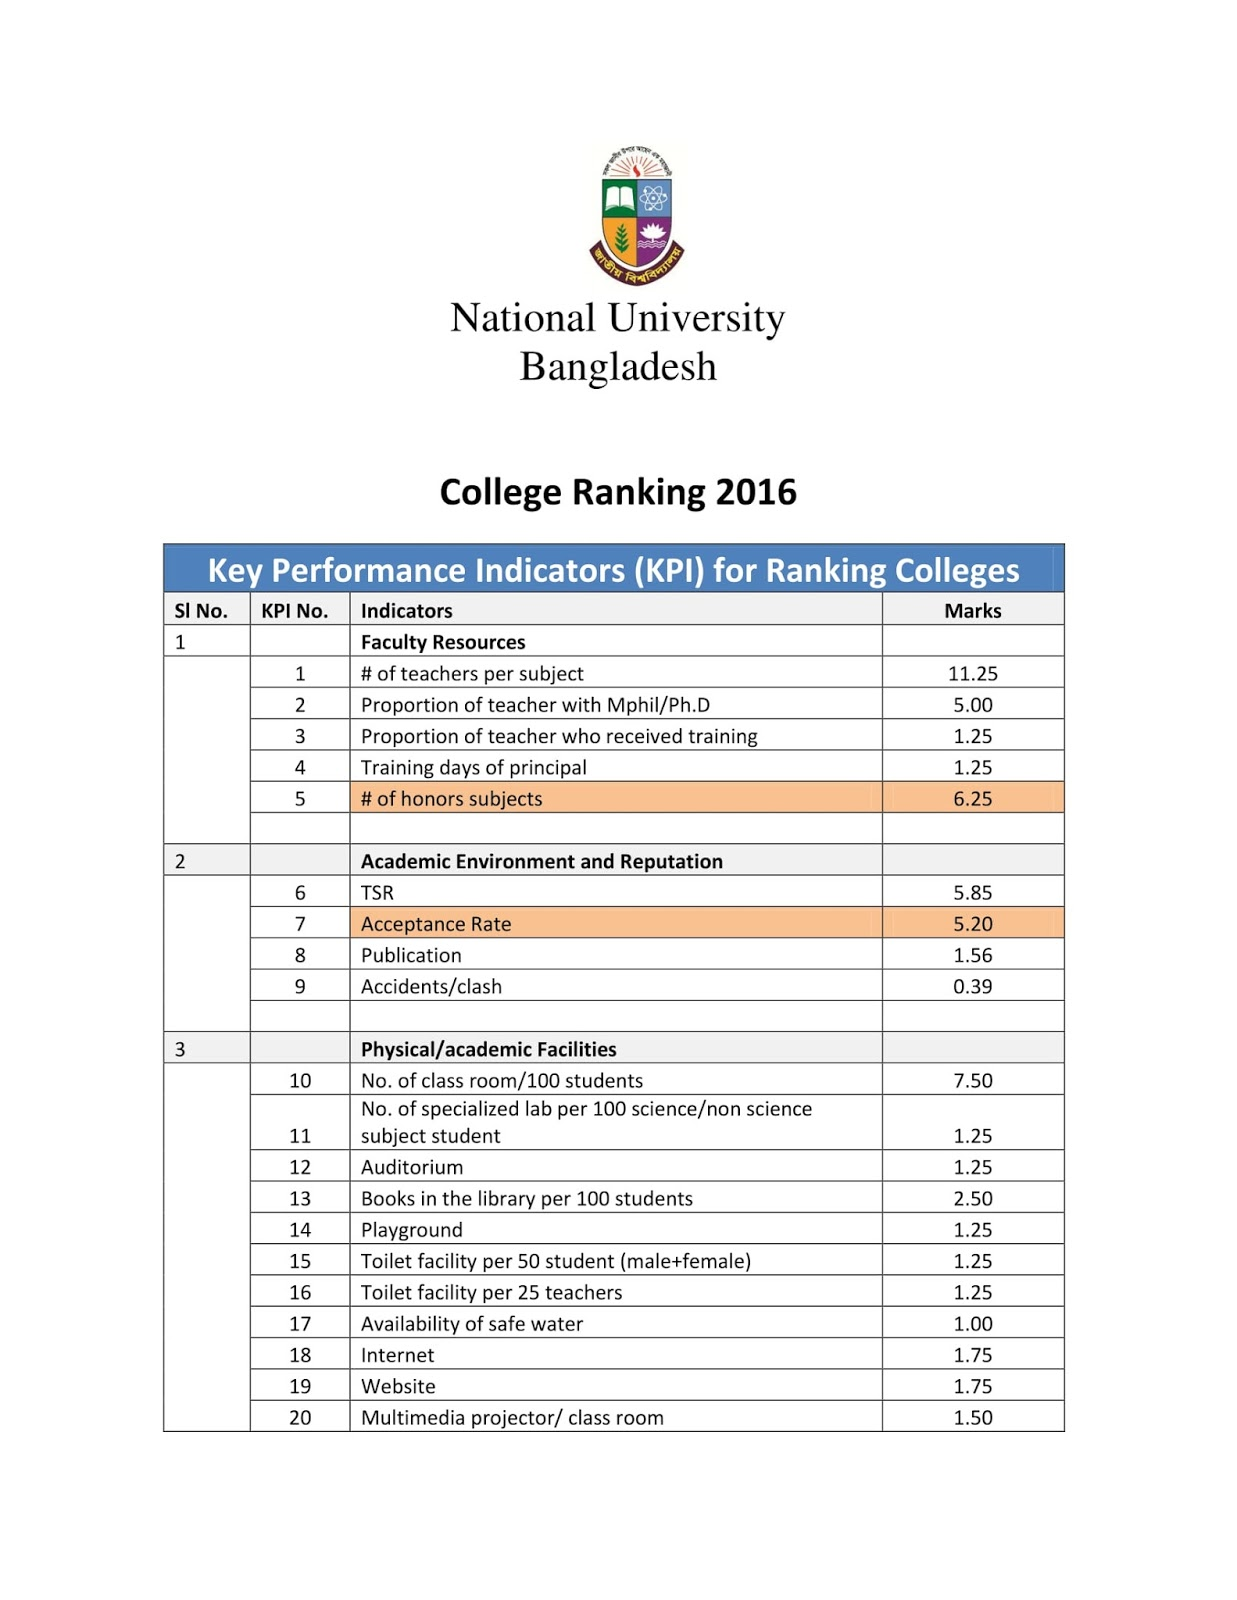 2020 Edition Of Best Colleges Is National Universities National University   NU   Bangladesh College Ranking 2019   2020